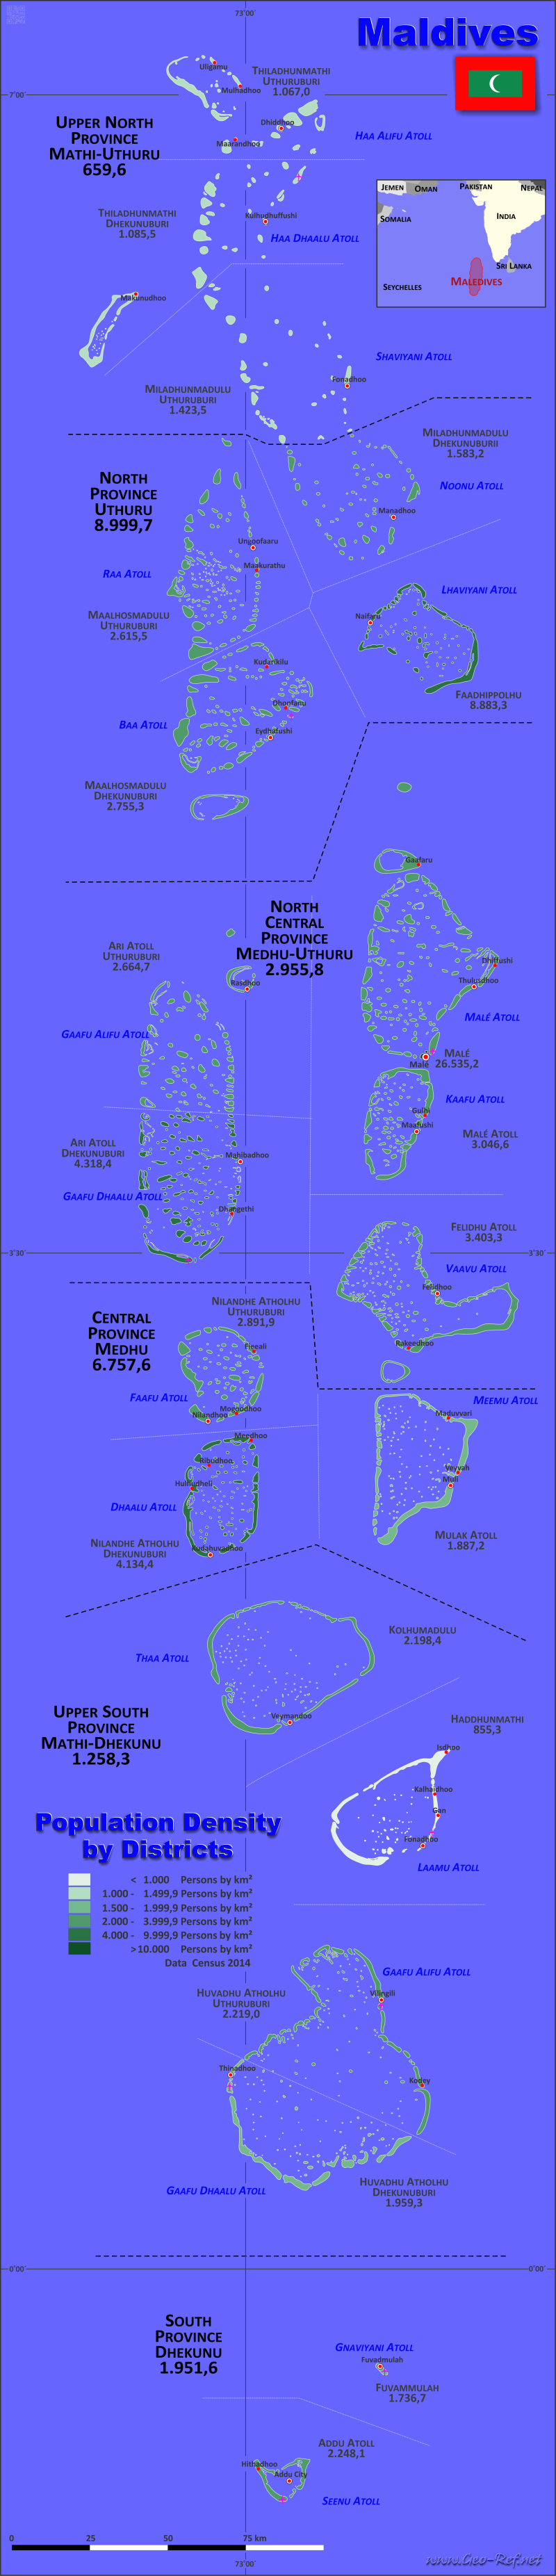 Map Maldives - Population density